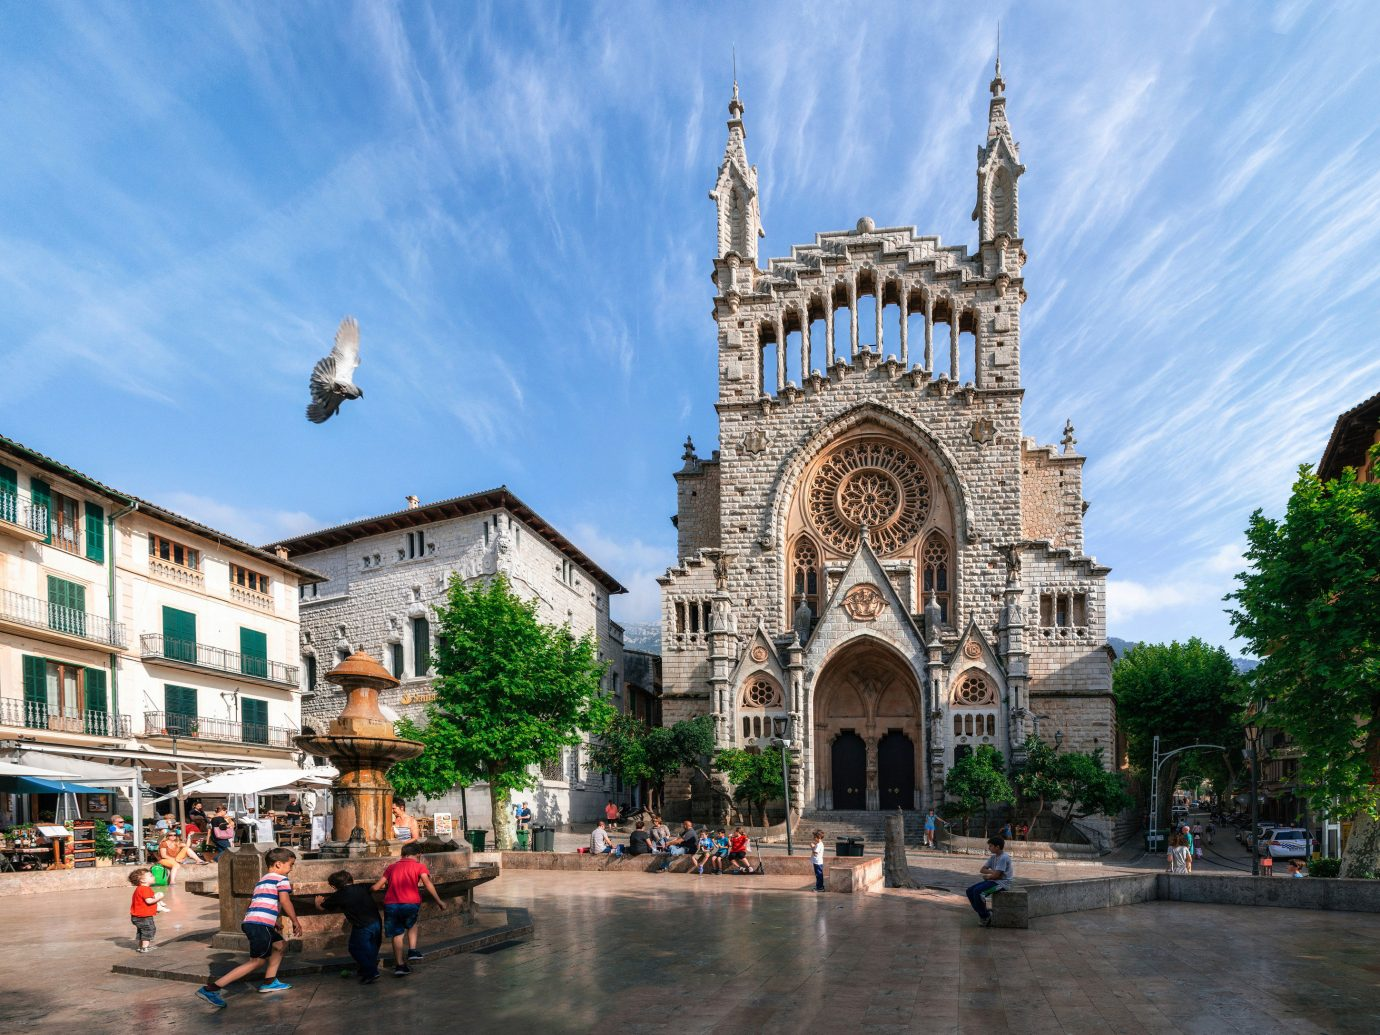 europe Spain Trip Ideas sky landmark Town City plaza cathedral metropolitan area town square building basilica tourist attraction place of worship Church historic site medieval architecture byzantine architecture metropolis tree tourism facade steeple street tours